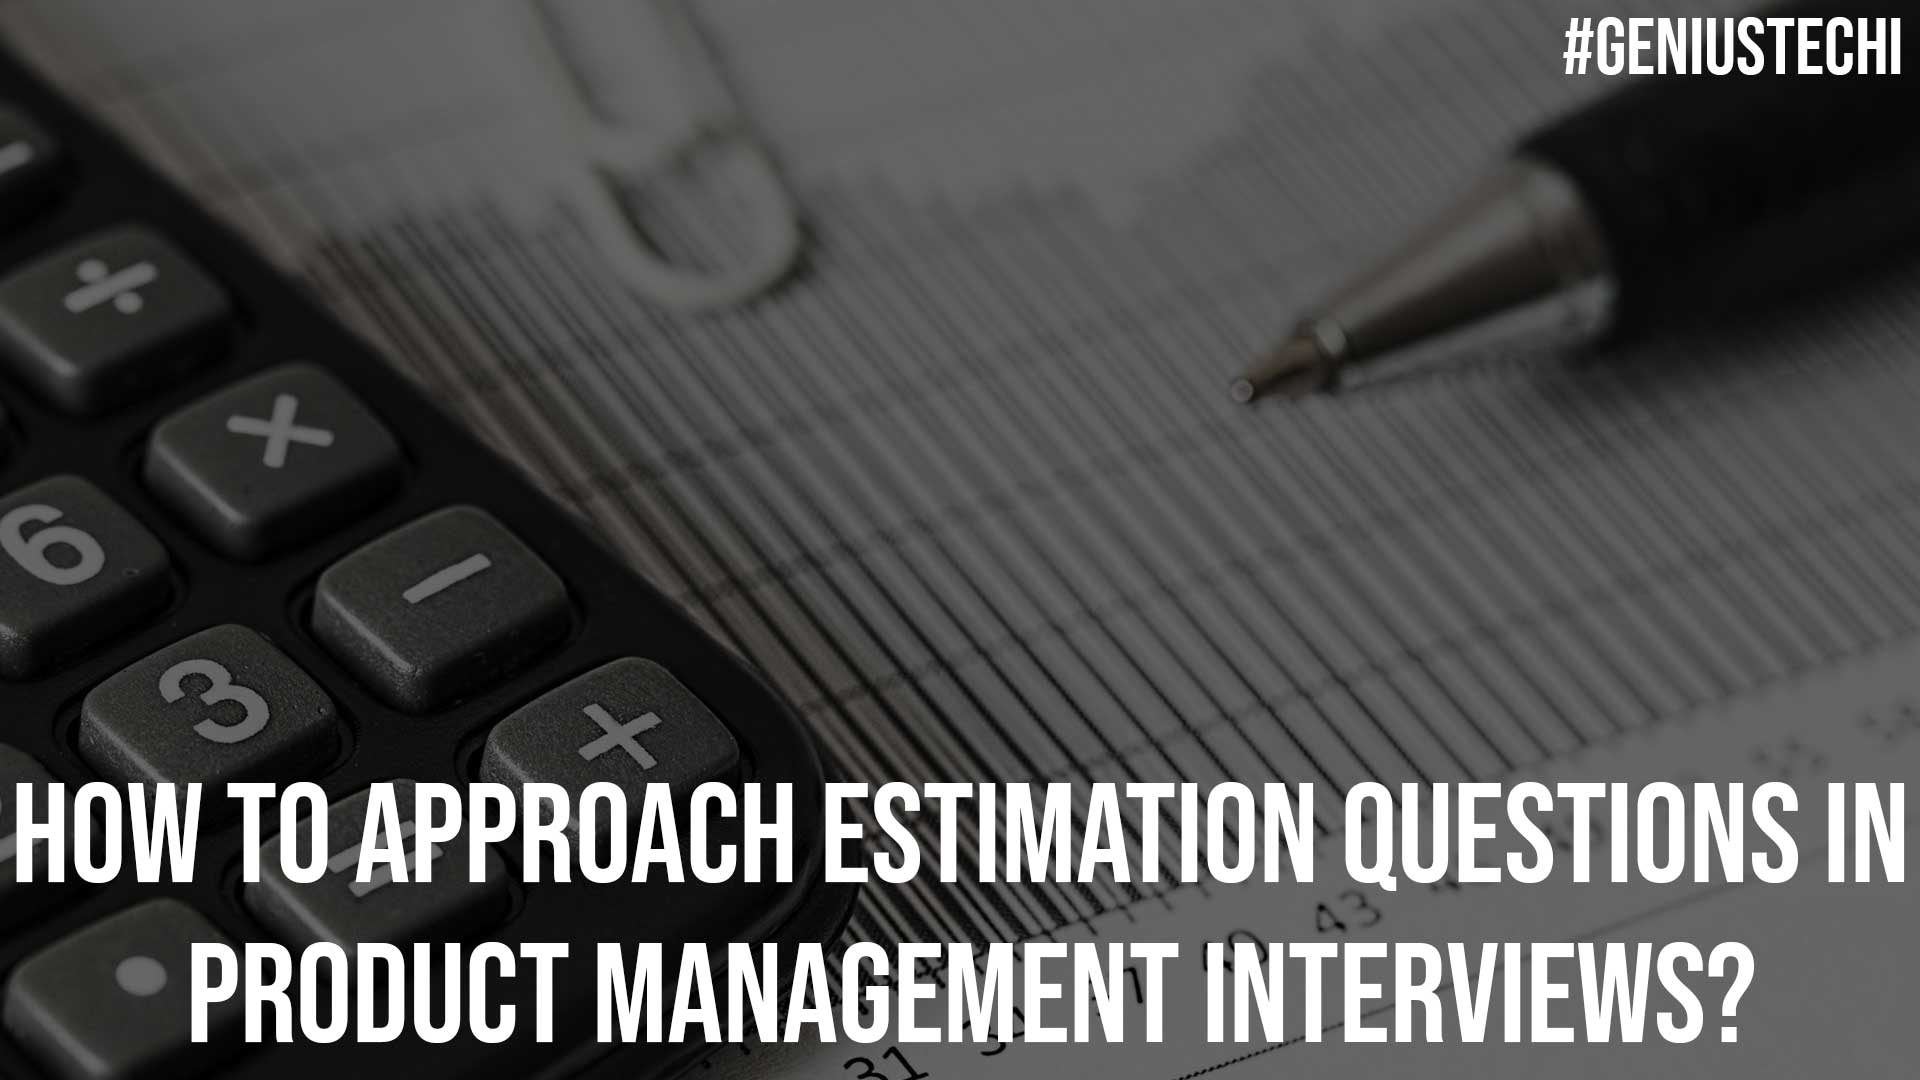 How to Approach Estimation Questions in Product Management Interviews